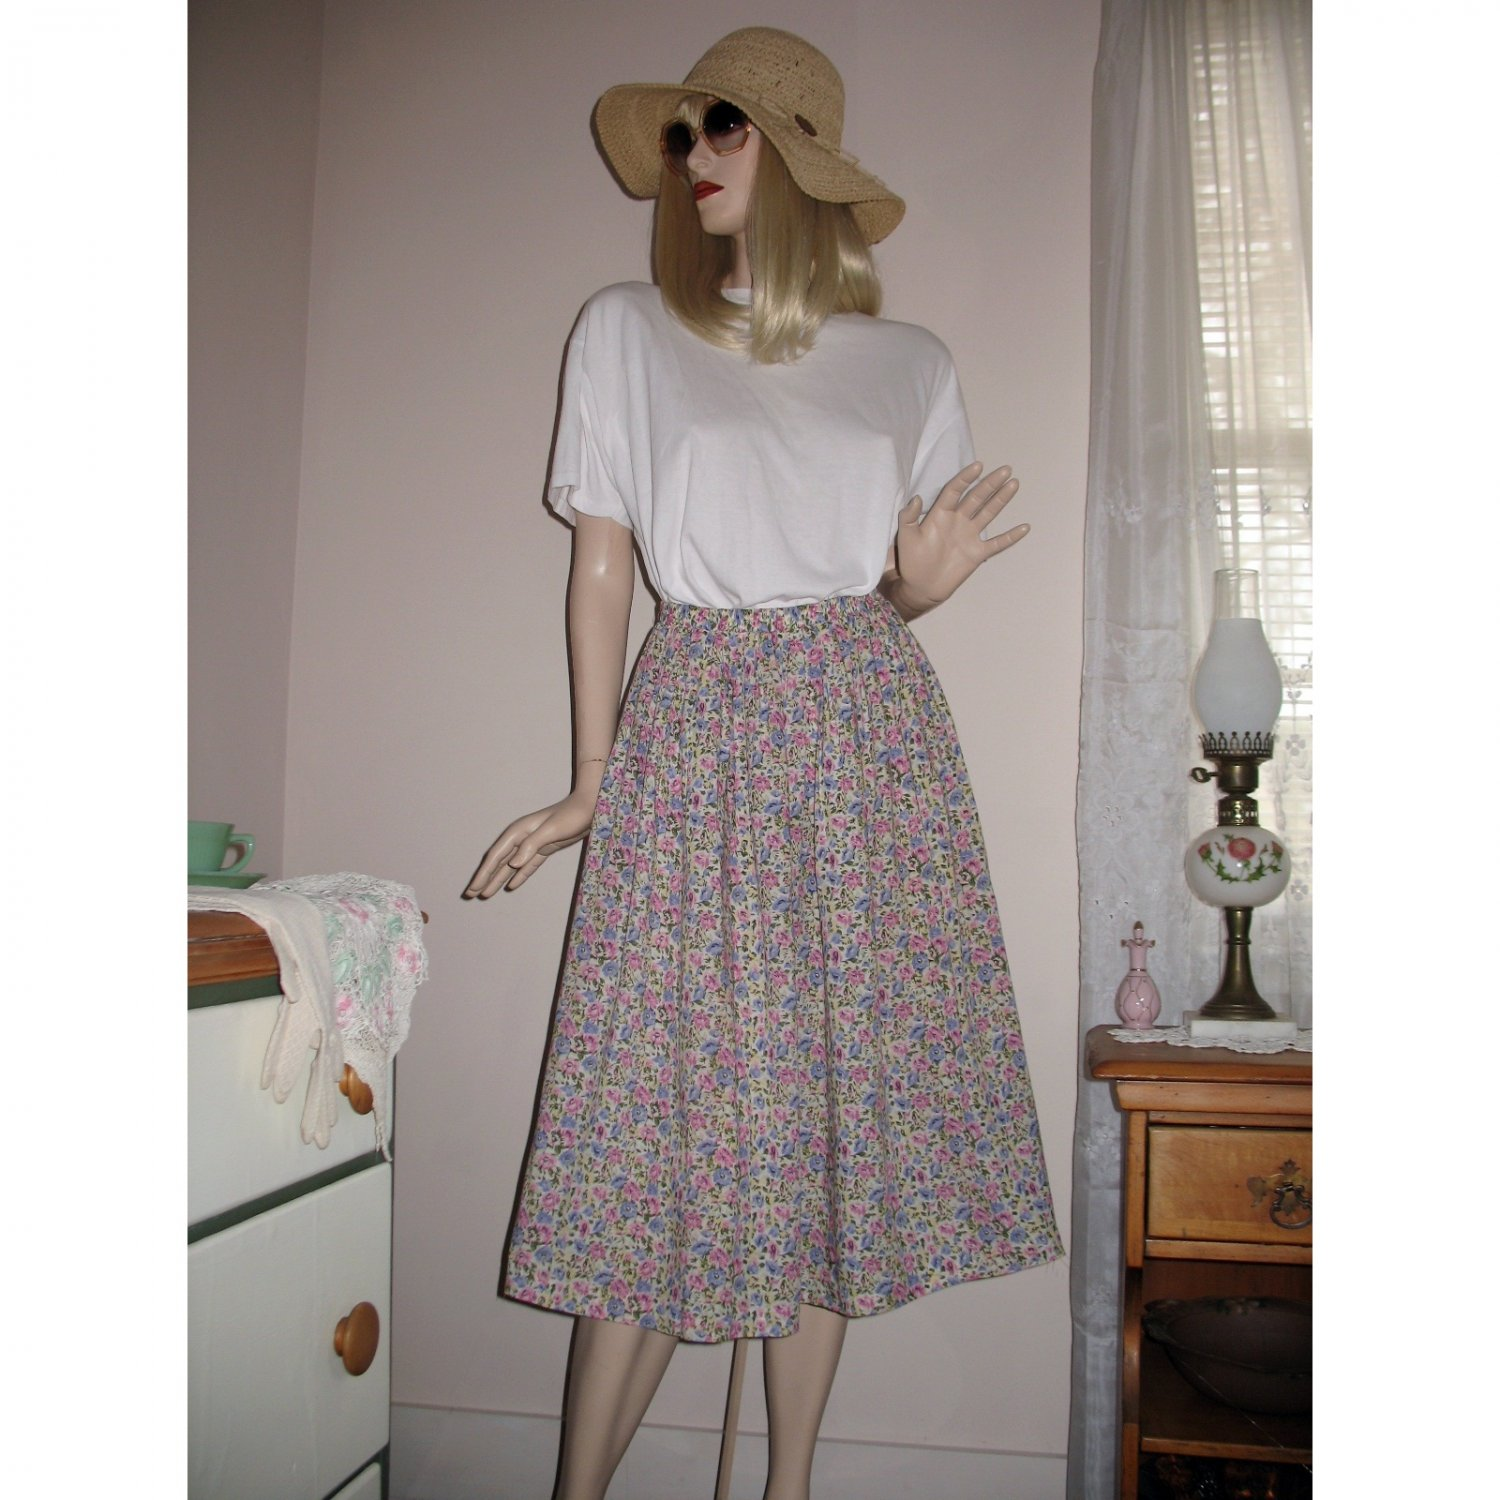 Full Gathered Casual Skirt Small Lavender/Pink Florals